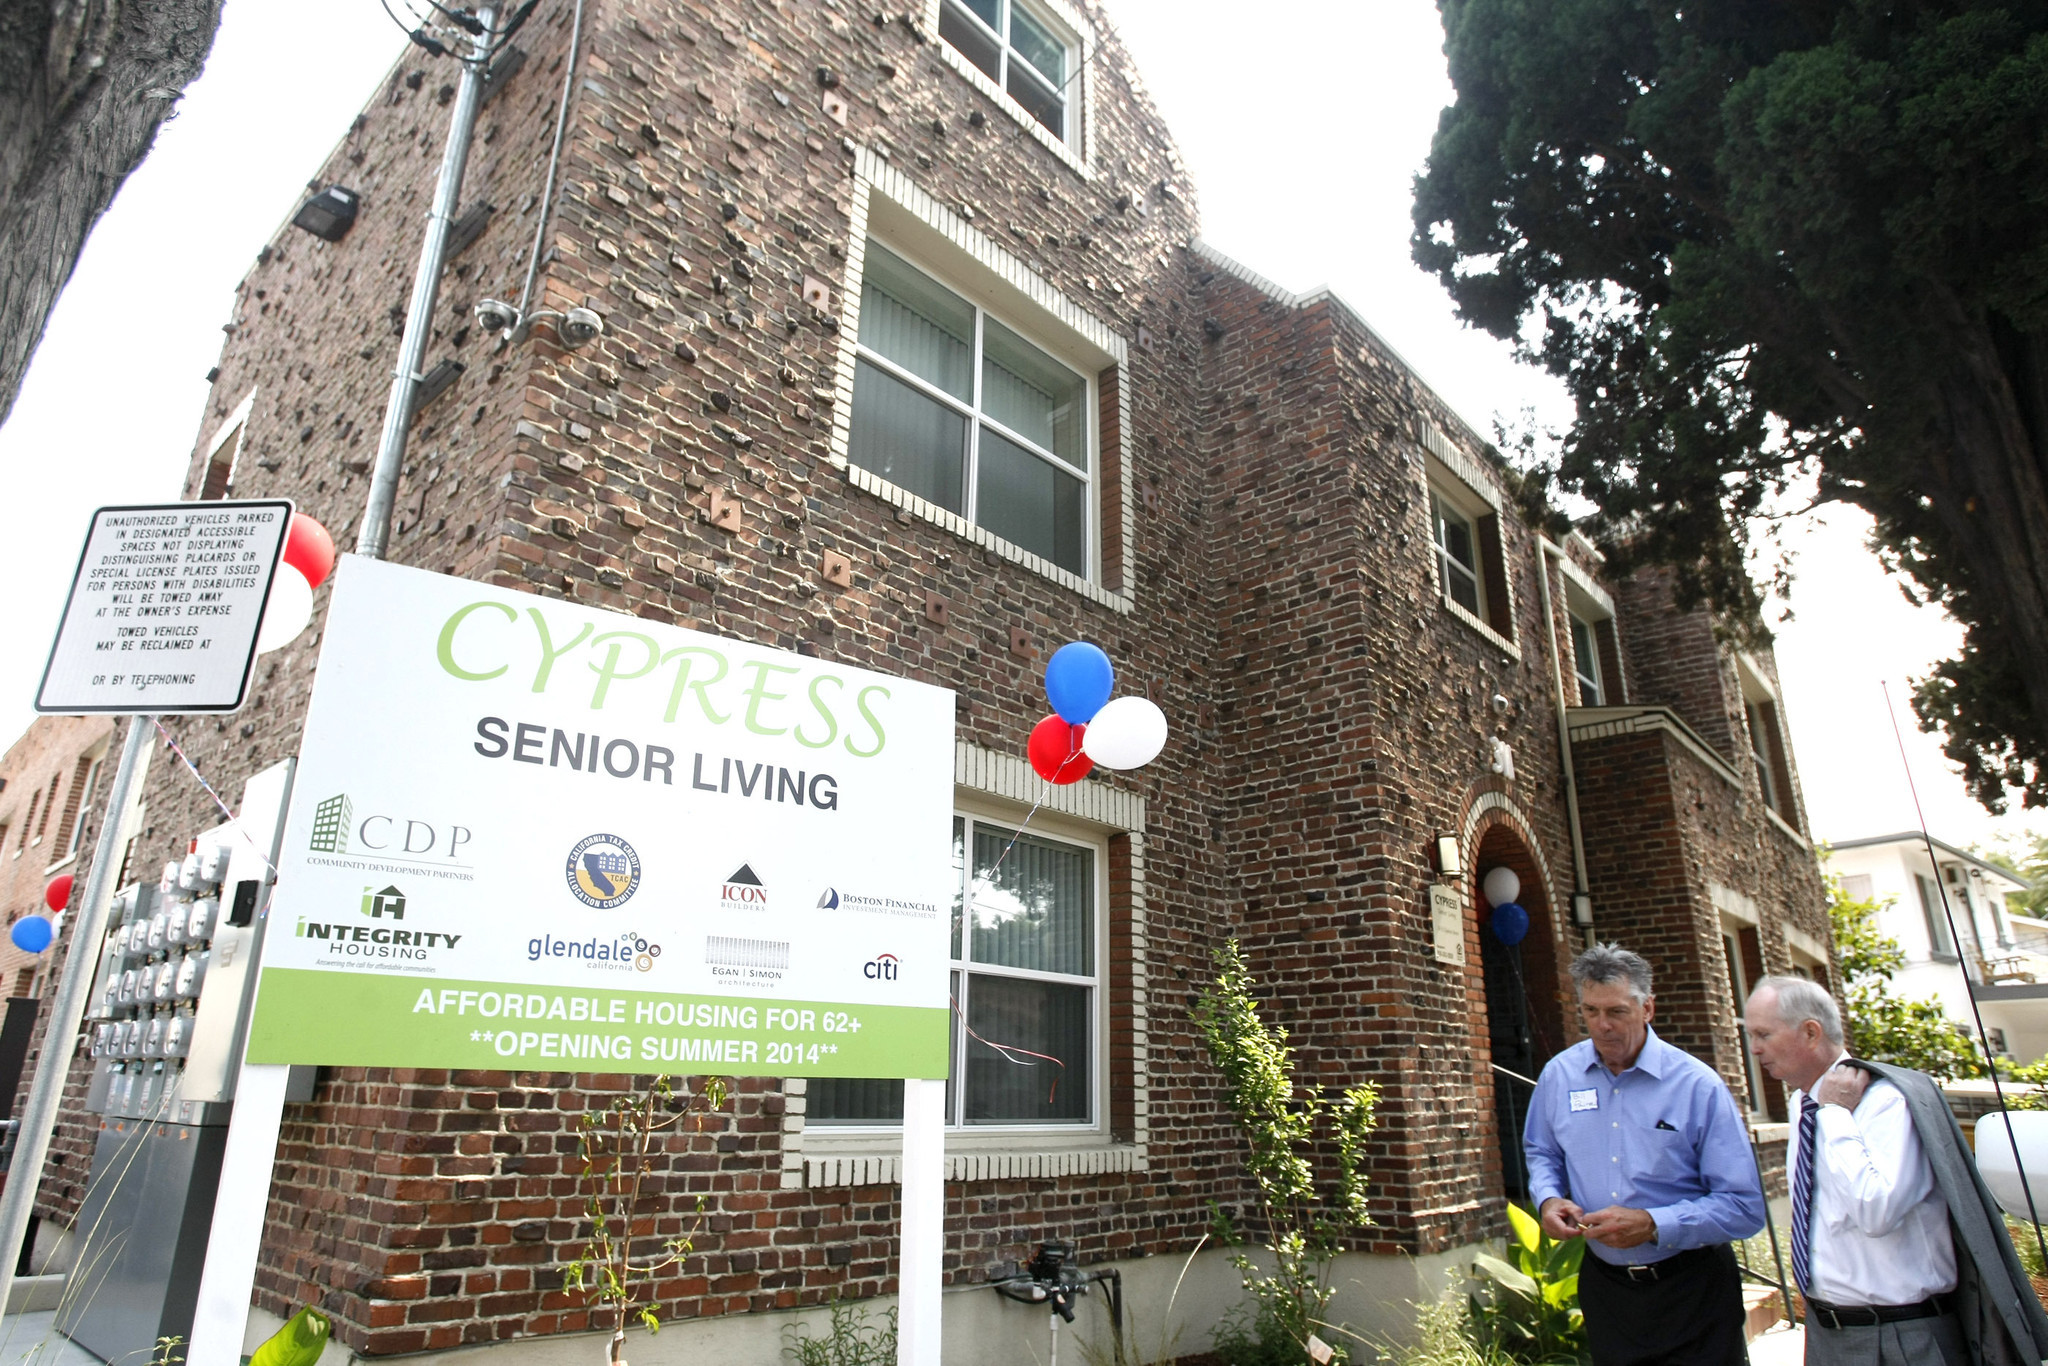 Glendale Housing For Low Income Seniors, Retired Veterans Opens Its Doors    LA Times